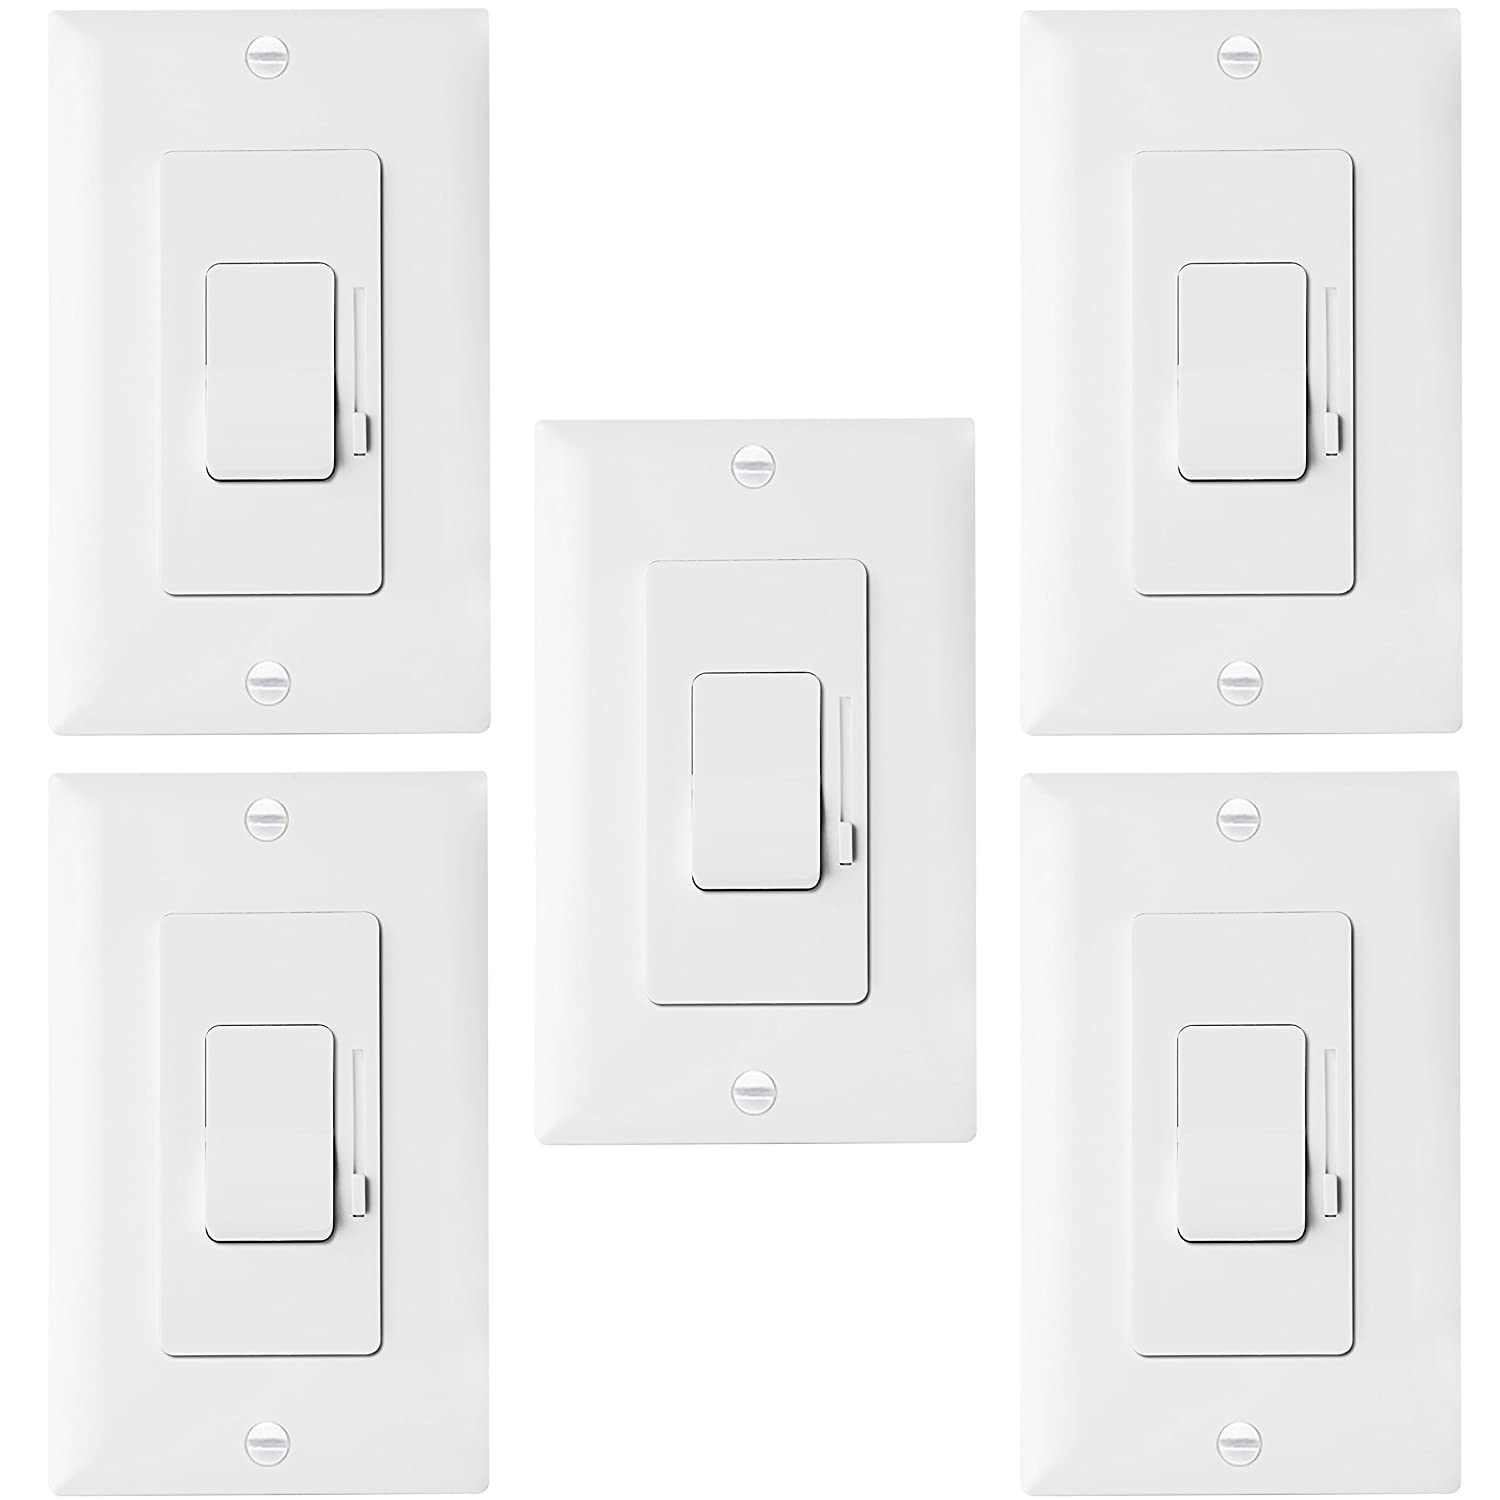 Enerlites Led Dimmer Switch 3 Way Universal Lighting 2 Switches Control For Lights Cfl Incandescent Halogen Wall Plates Included